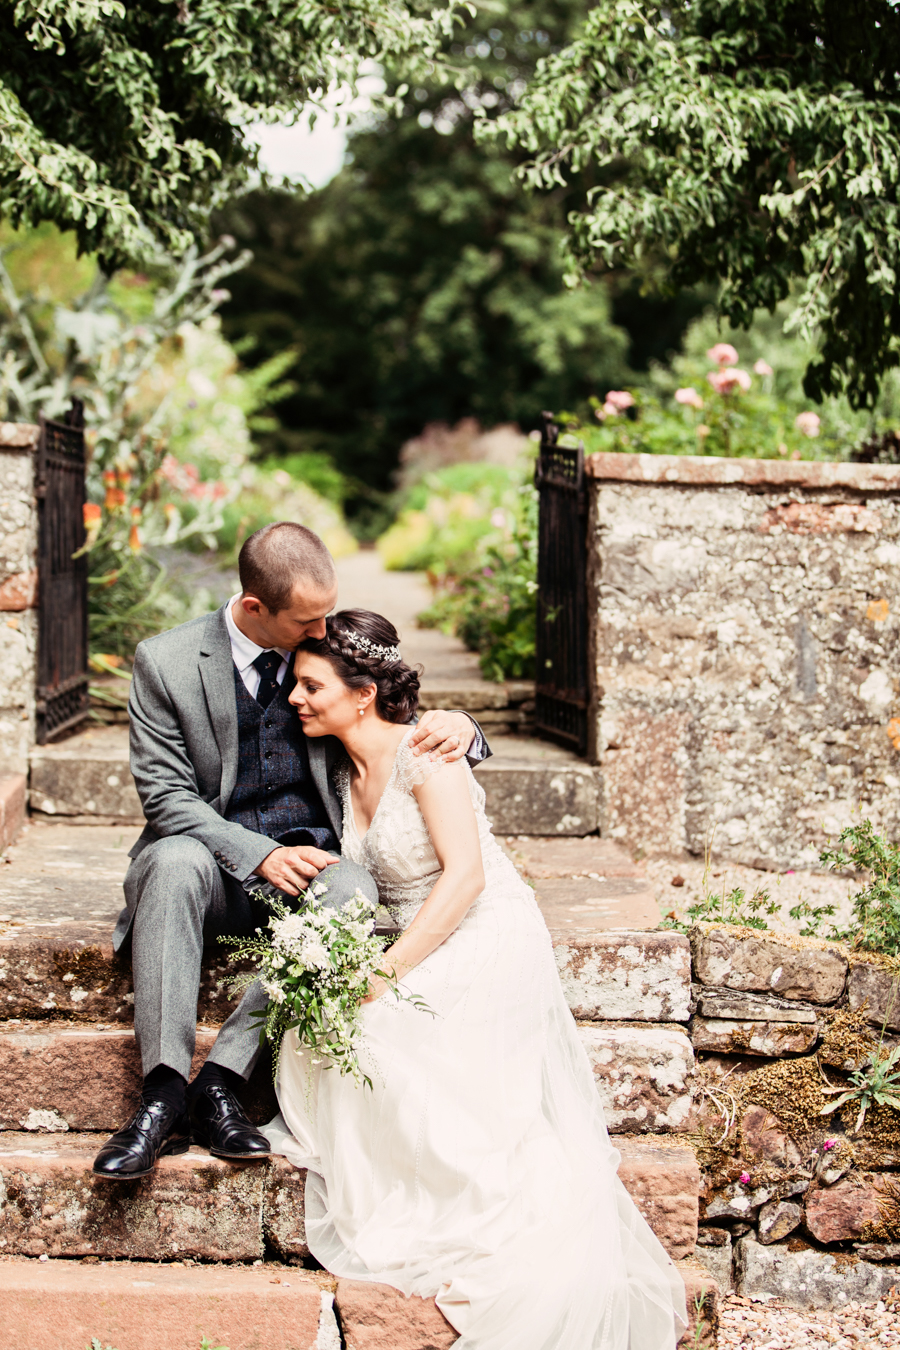 Askham Hall wedding venue on the English Wedding Blog, with Camilla Lucinda Photography (27)